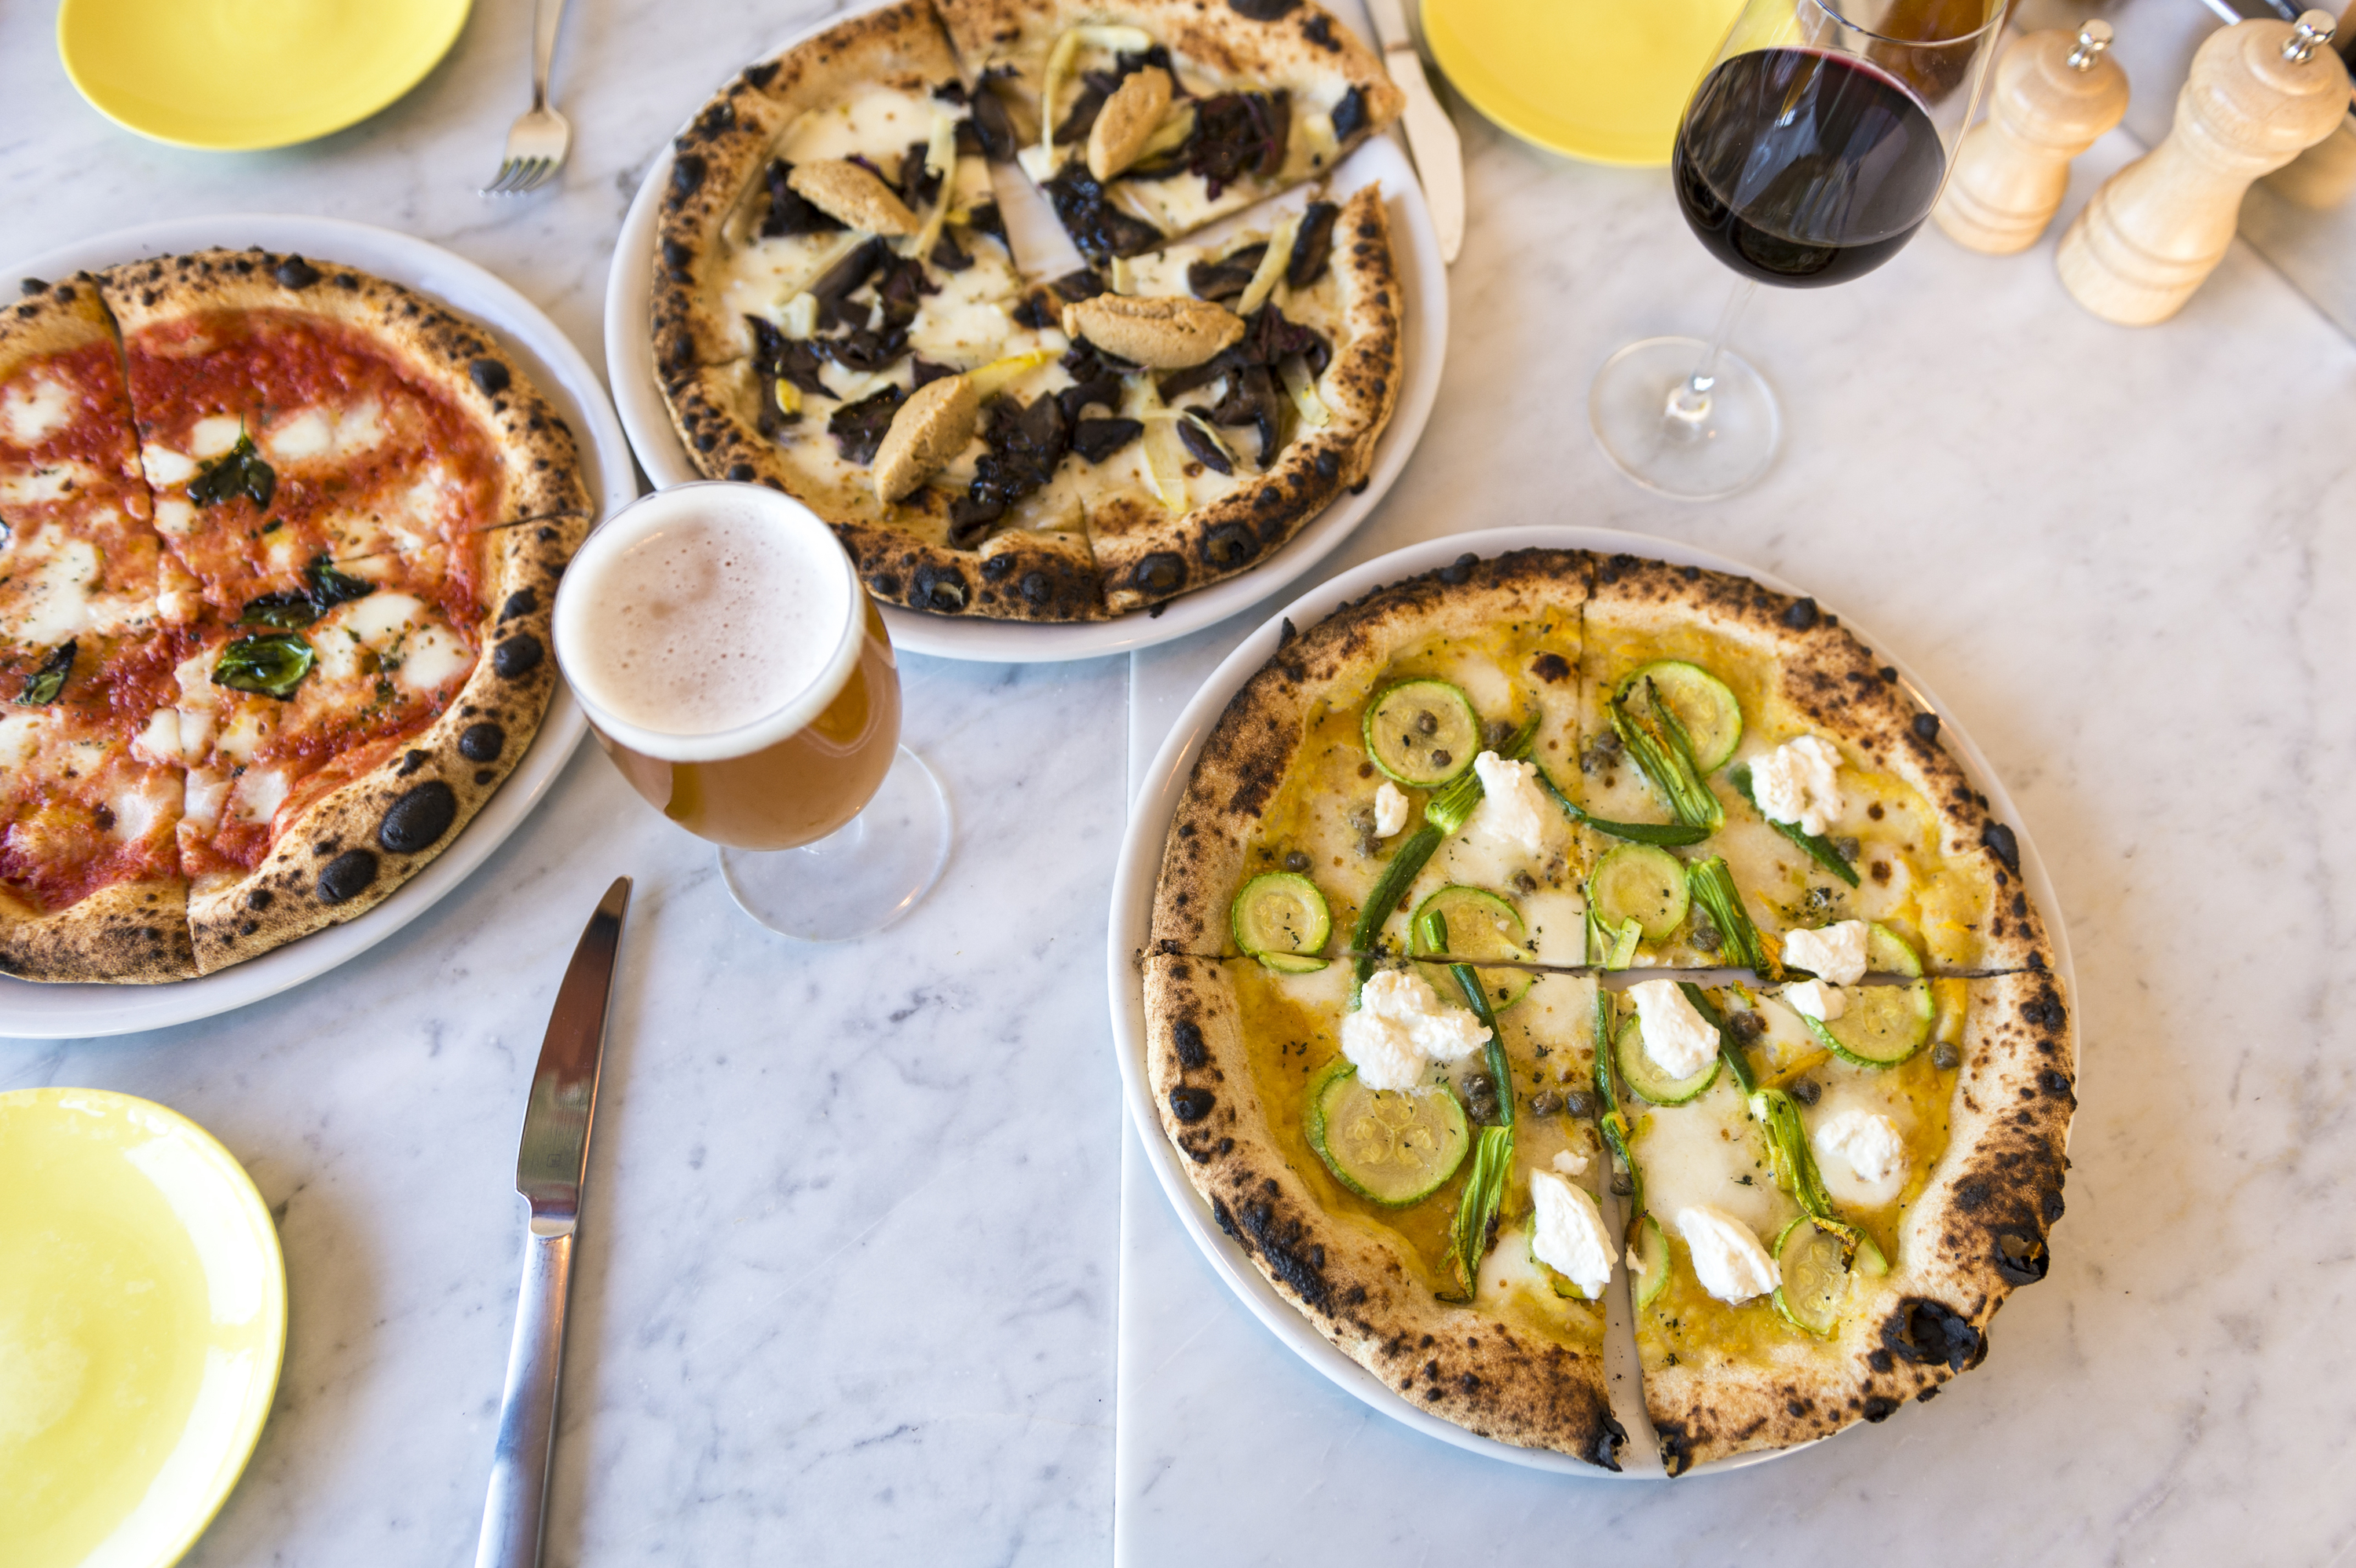 Three pizzas and drinks on a table